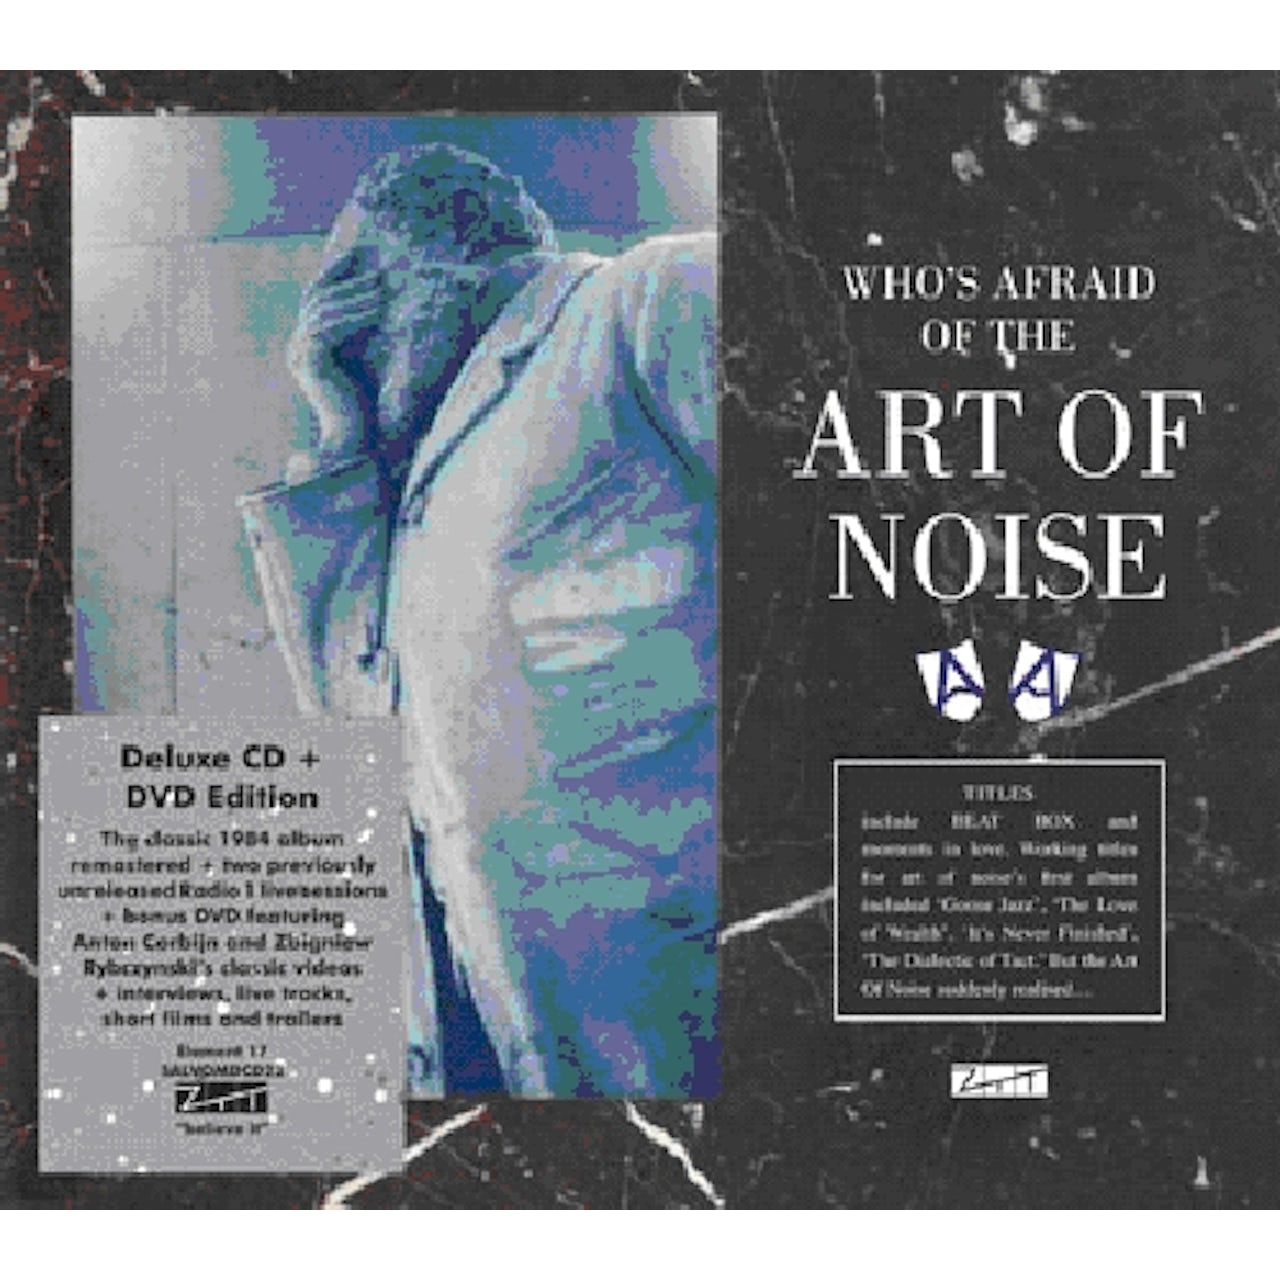 Whos Afraid Of The Art Of Noise Cd